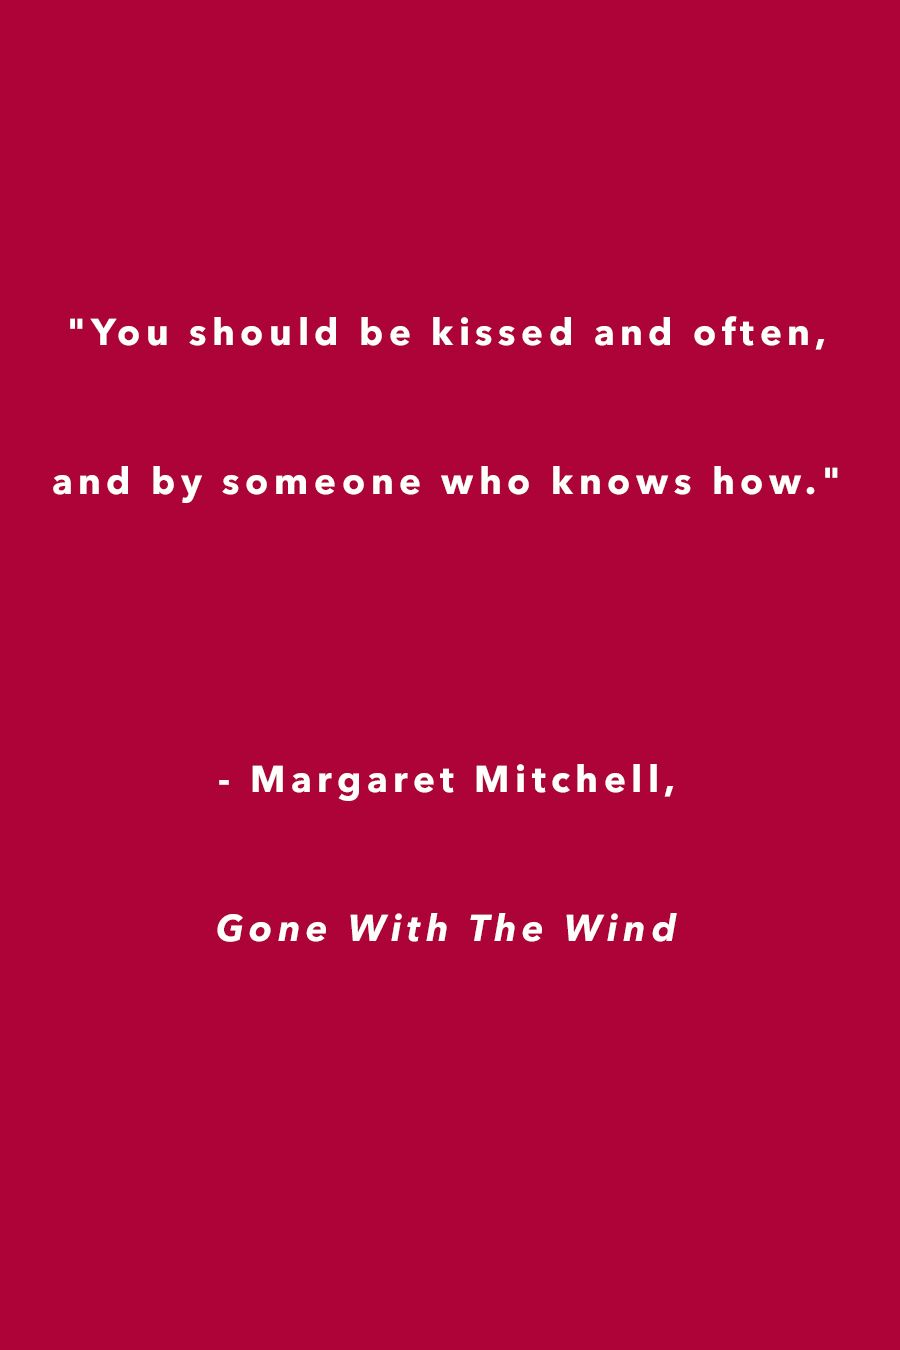 15 Heart Wrenching Love Quotes From Literature Love Quotes From Literature Love Literature Quotes Literary Love Quotes